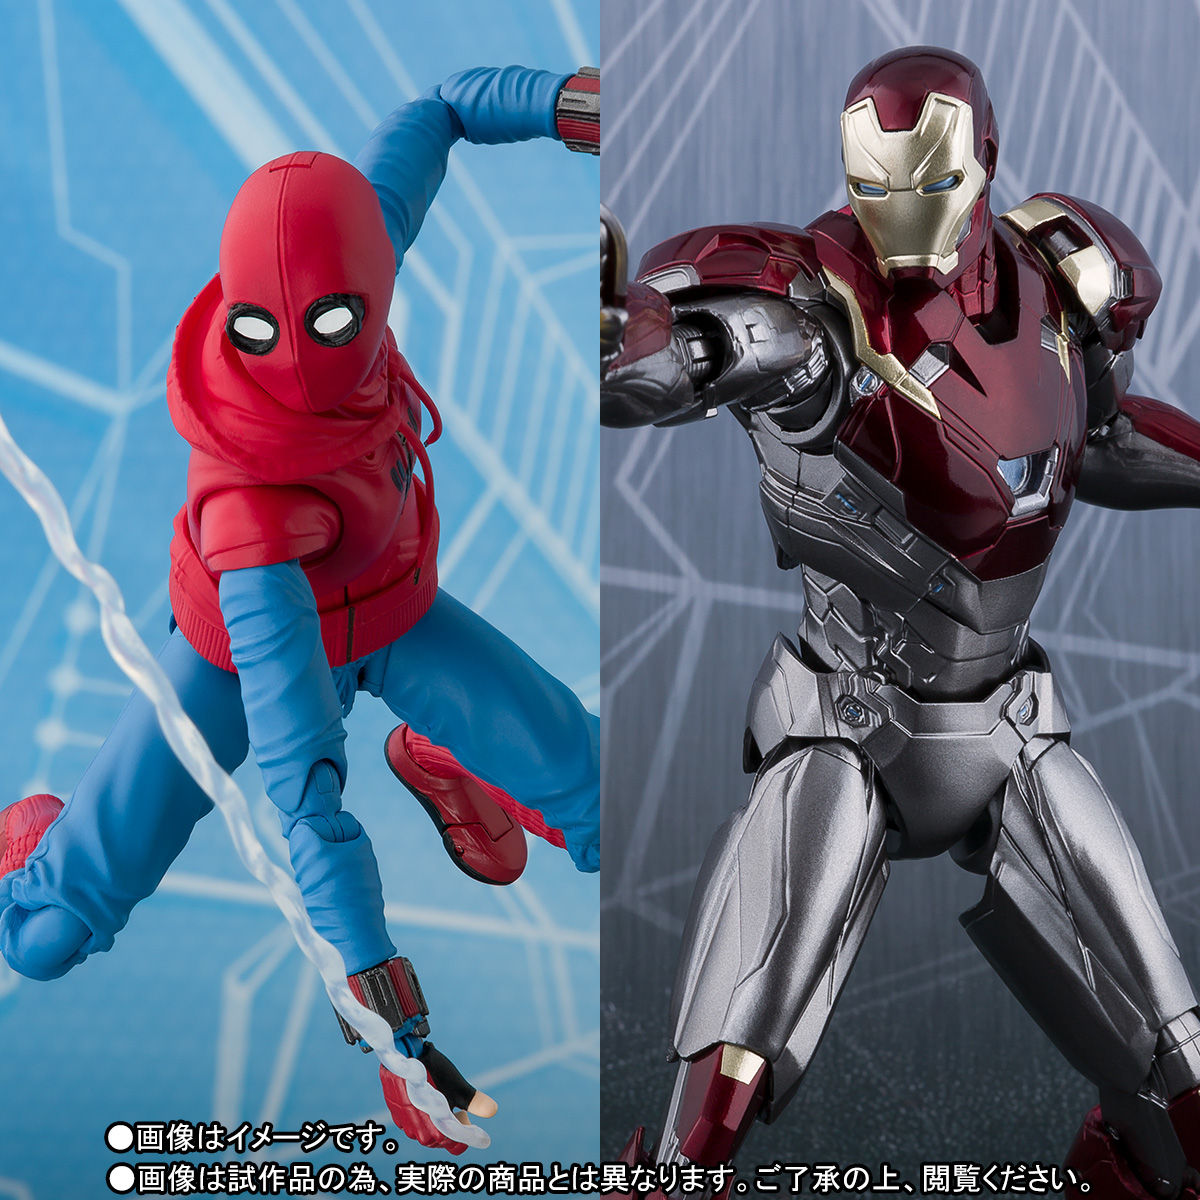 S.H. Figuarts Spider-Man: Homecoming – Homemade Suit Spider-Man & Iron Man Figures